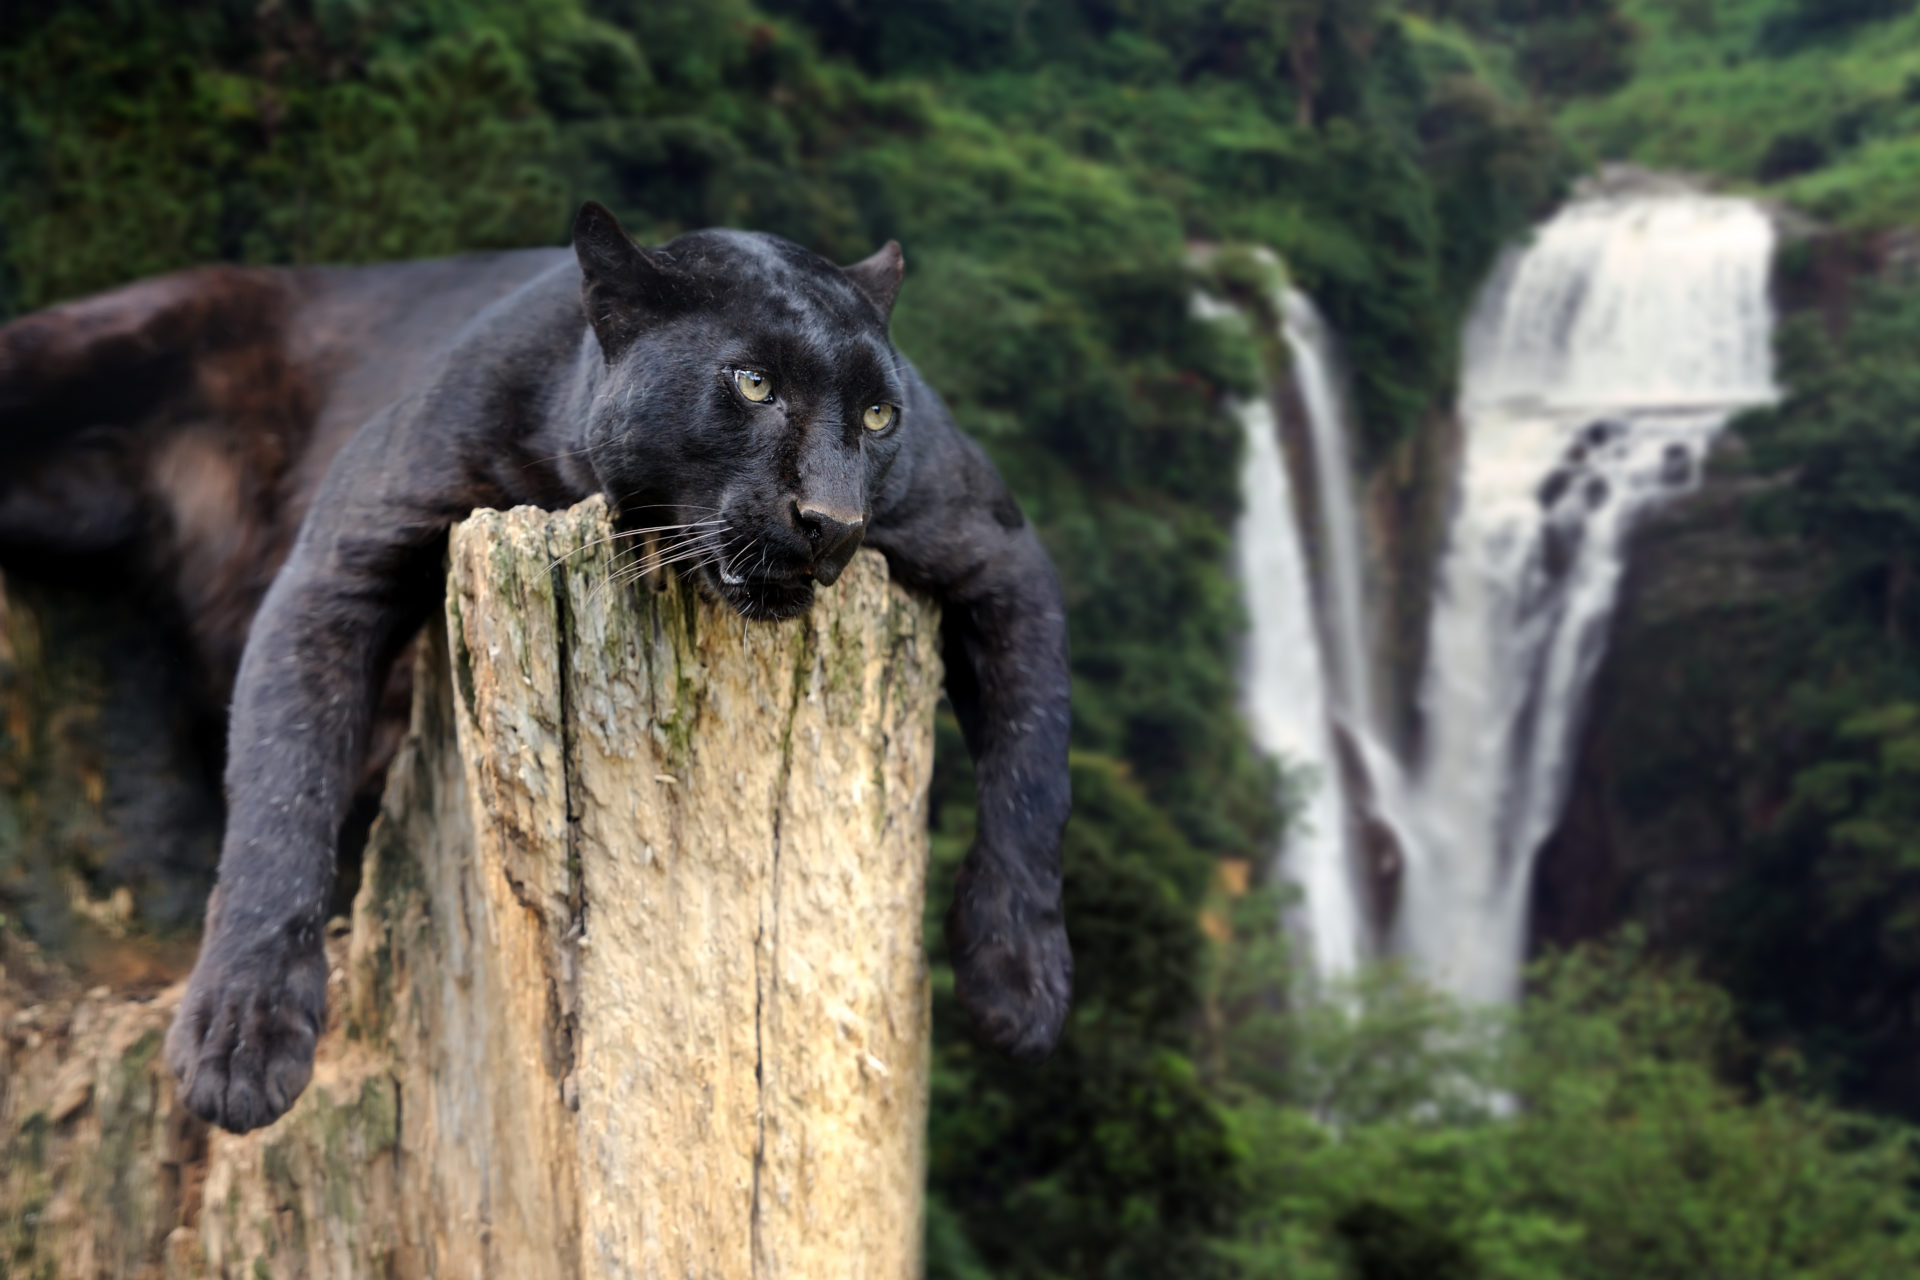 Black Panther Hd Wallpaper New Tab Theme Impressive Nature